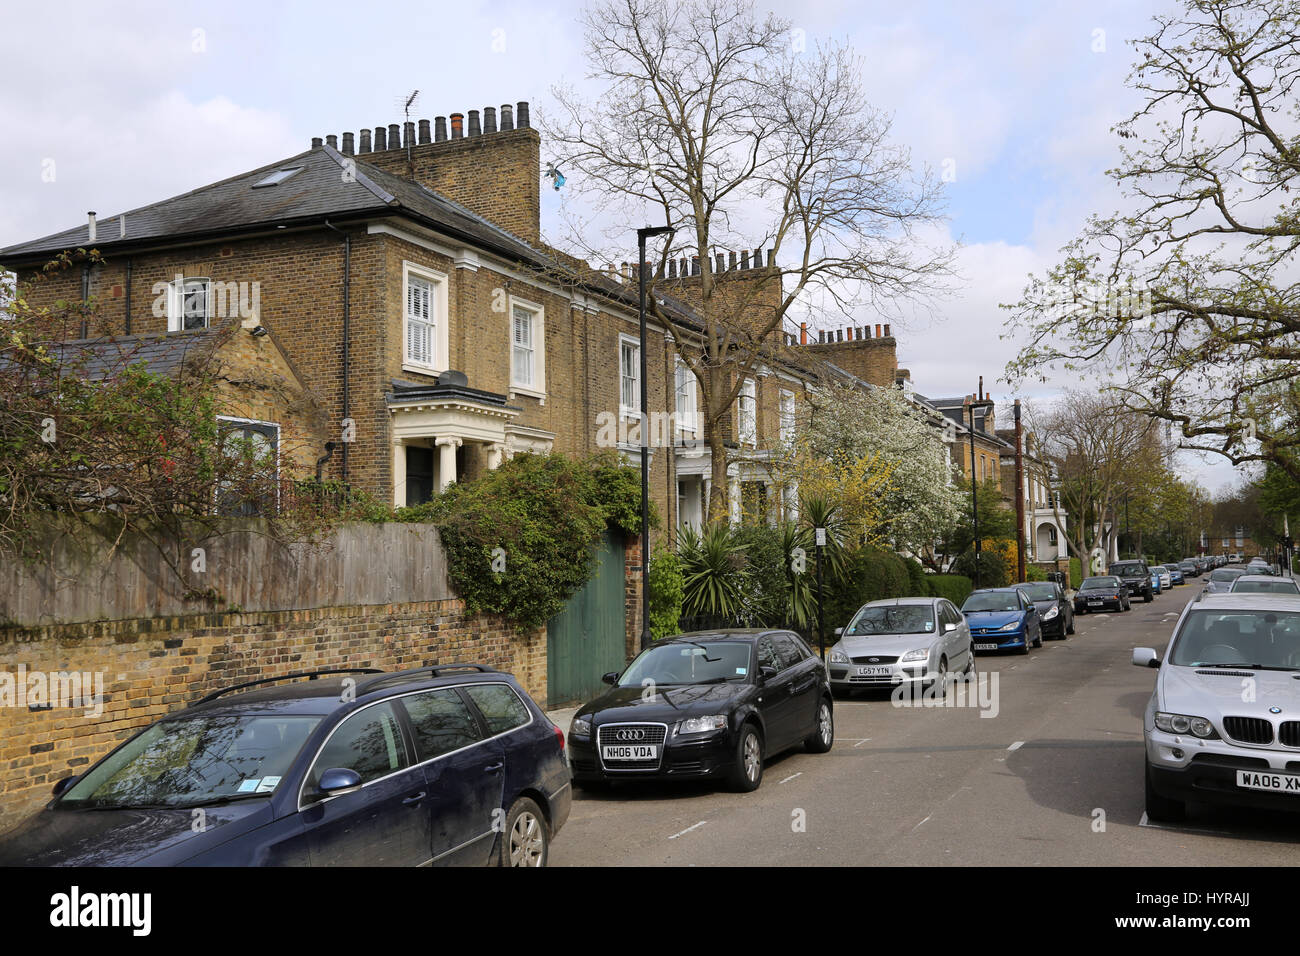 Guildford Street. A residential road in Stockwell, south London, UK. A typical street of Victorian houses. - Stock Image